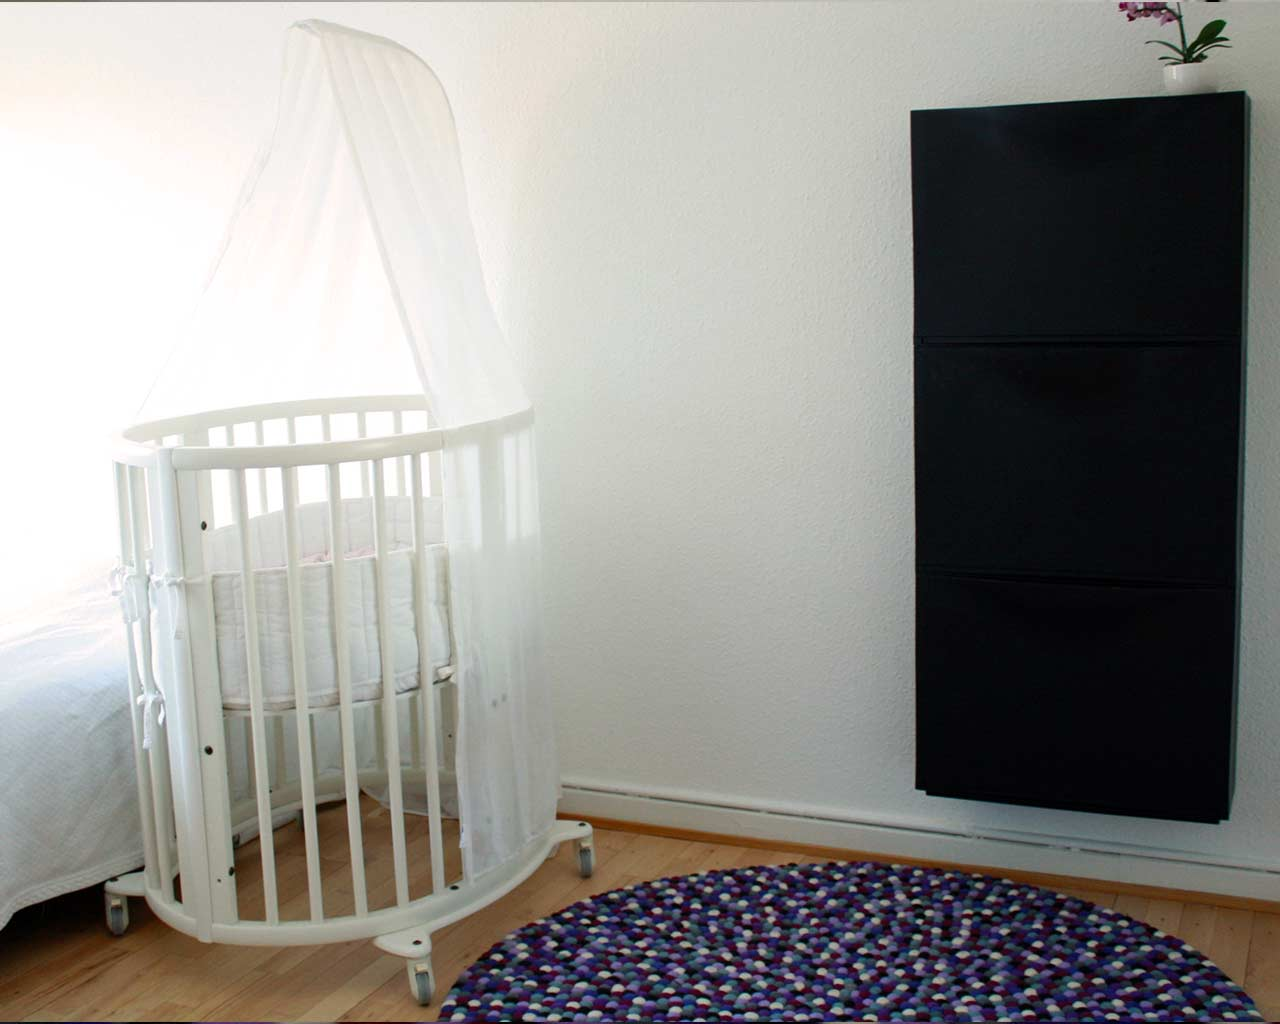 baba room design white black purple